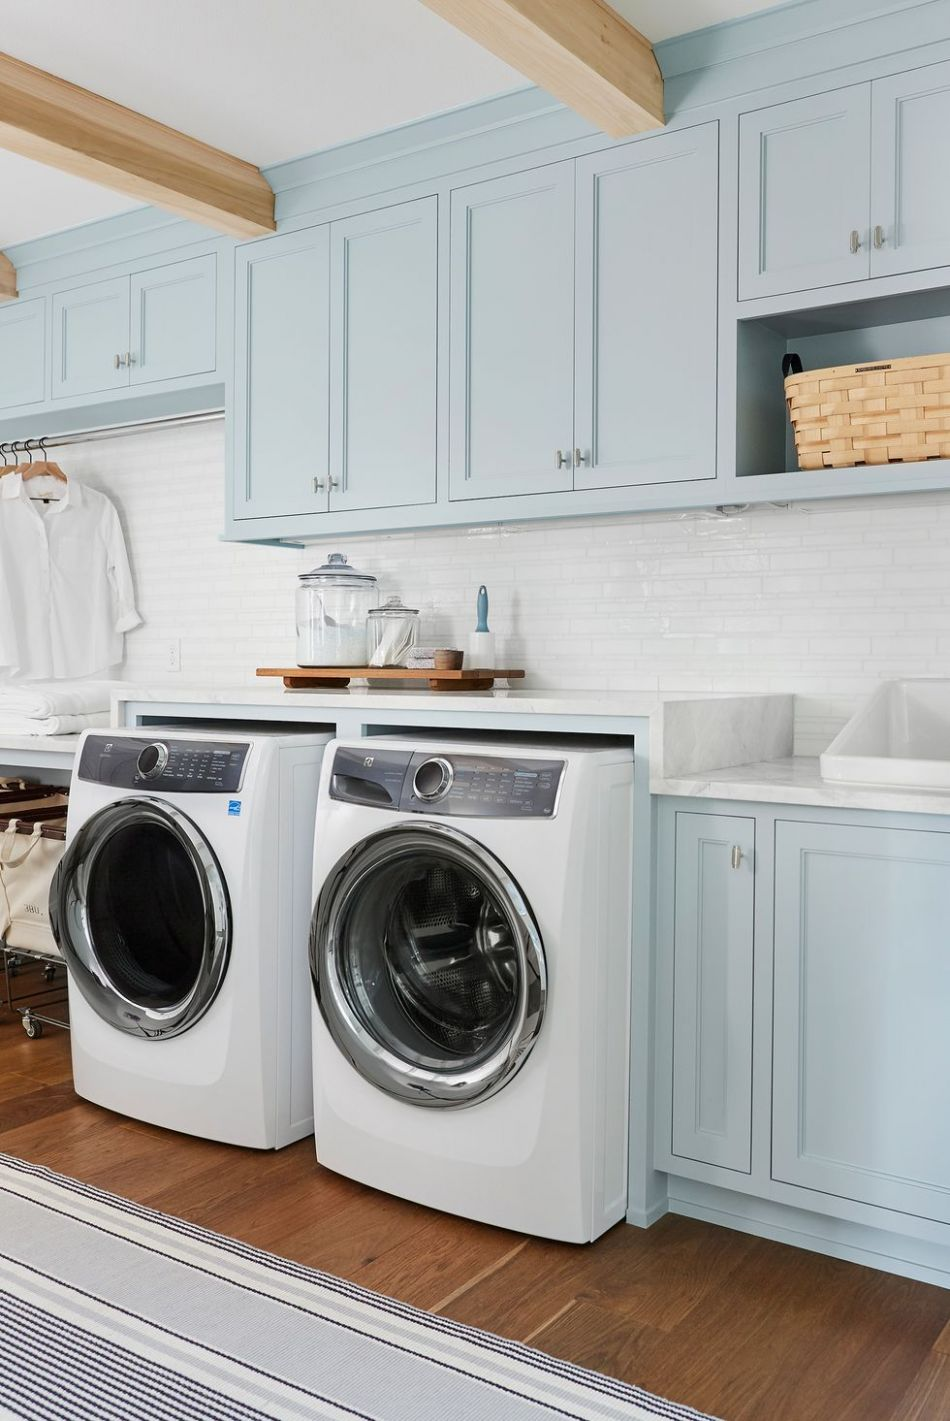 Small Laundry Room Design Ideas With Stackable Washer And Dryer ...